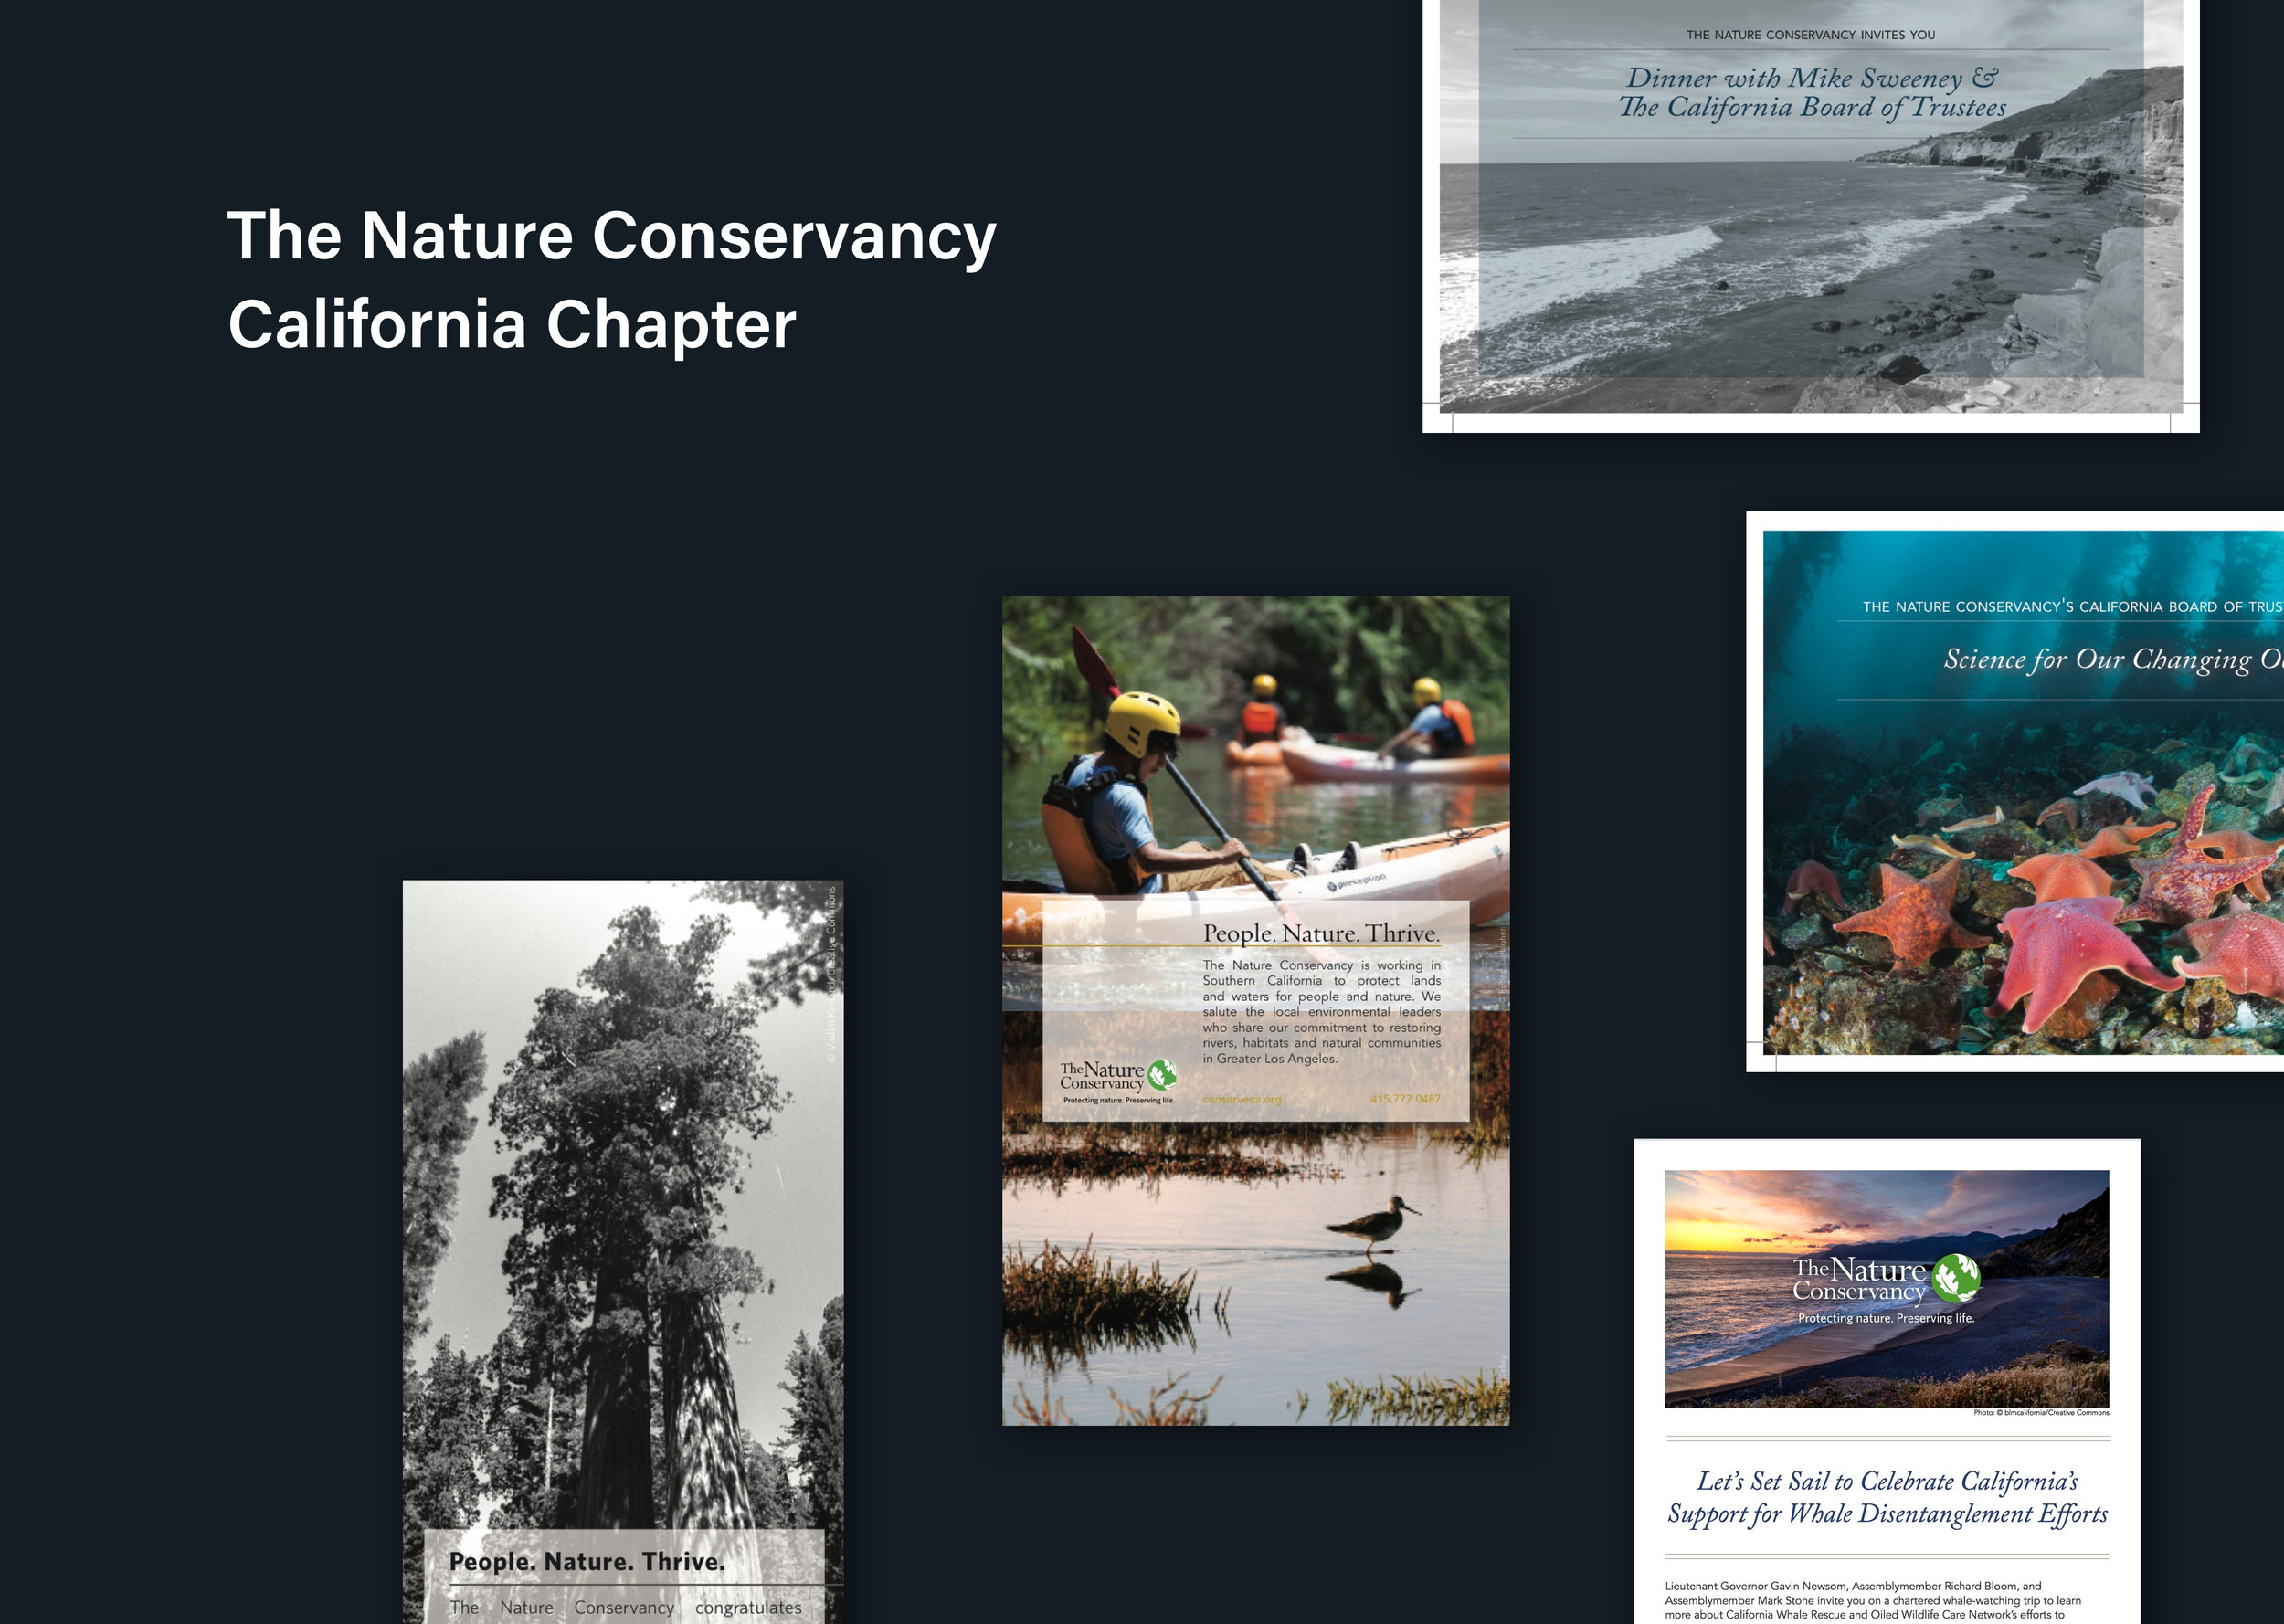 Next Project: The Nature Conservancy in California Marketing Communications - Evites, Invitations, Ads